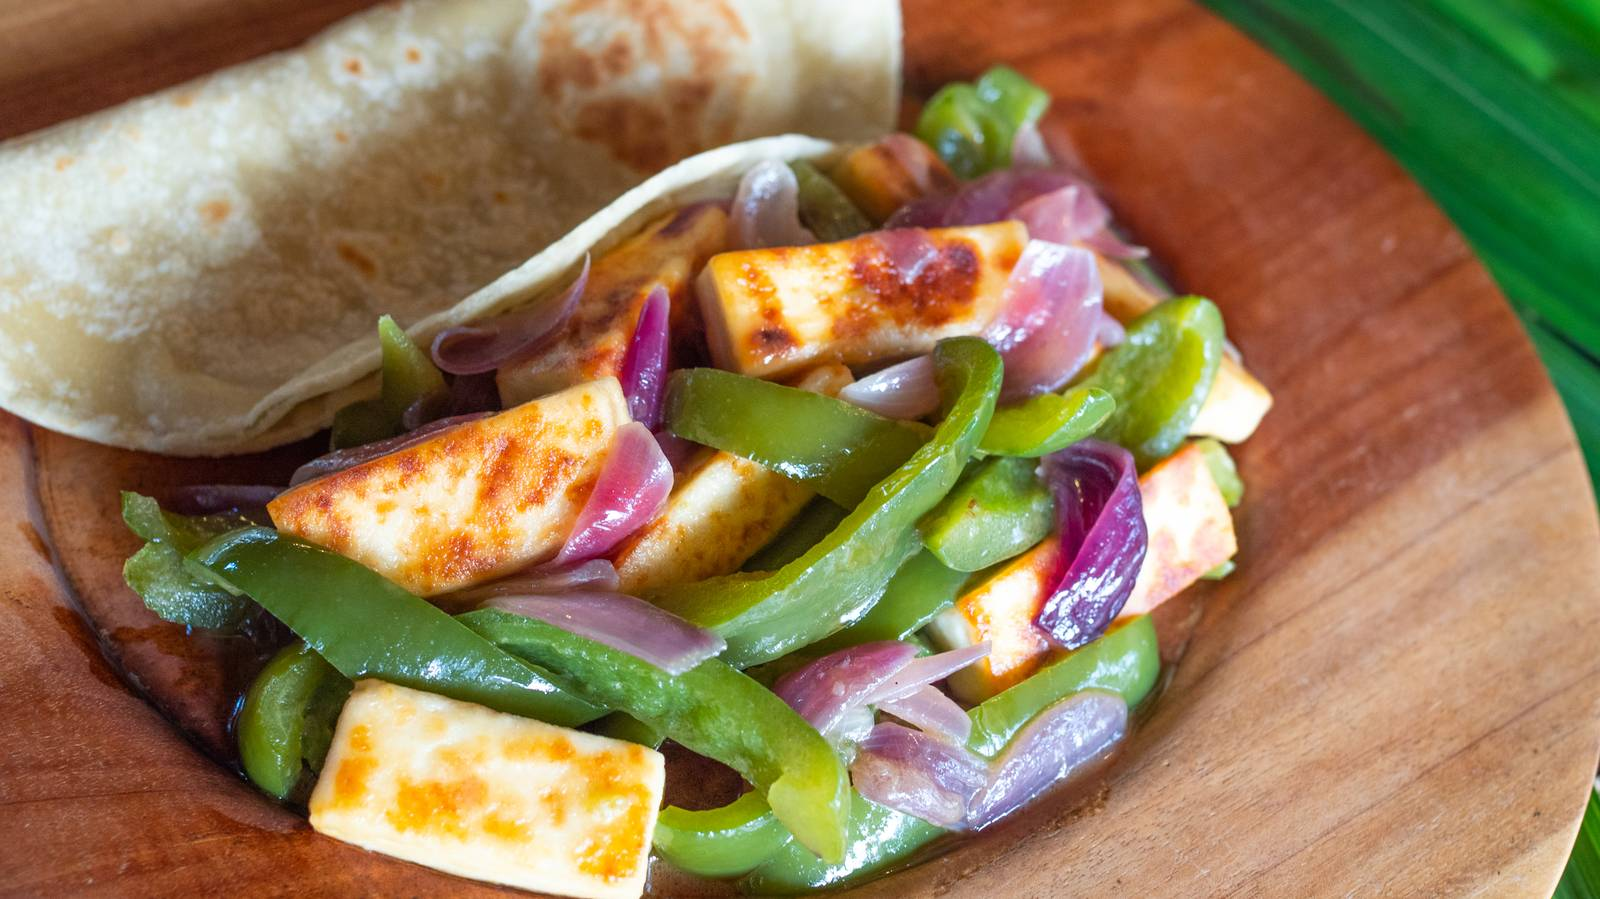 Stir-fry Paneer with Vegetables